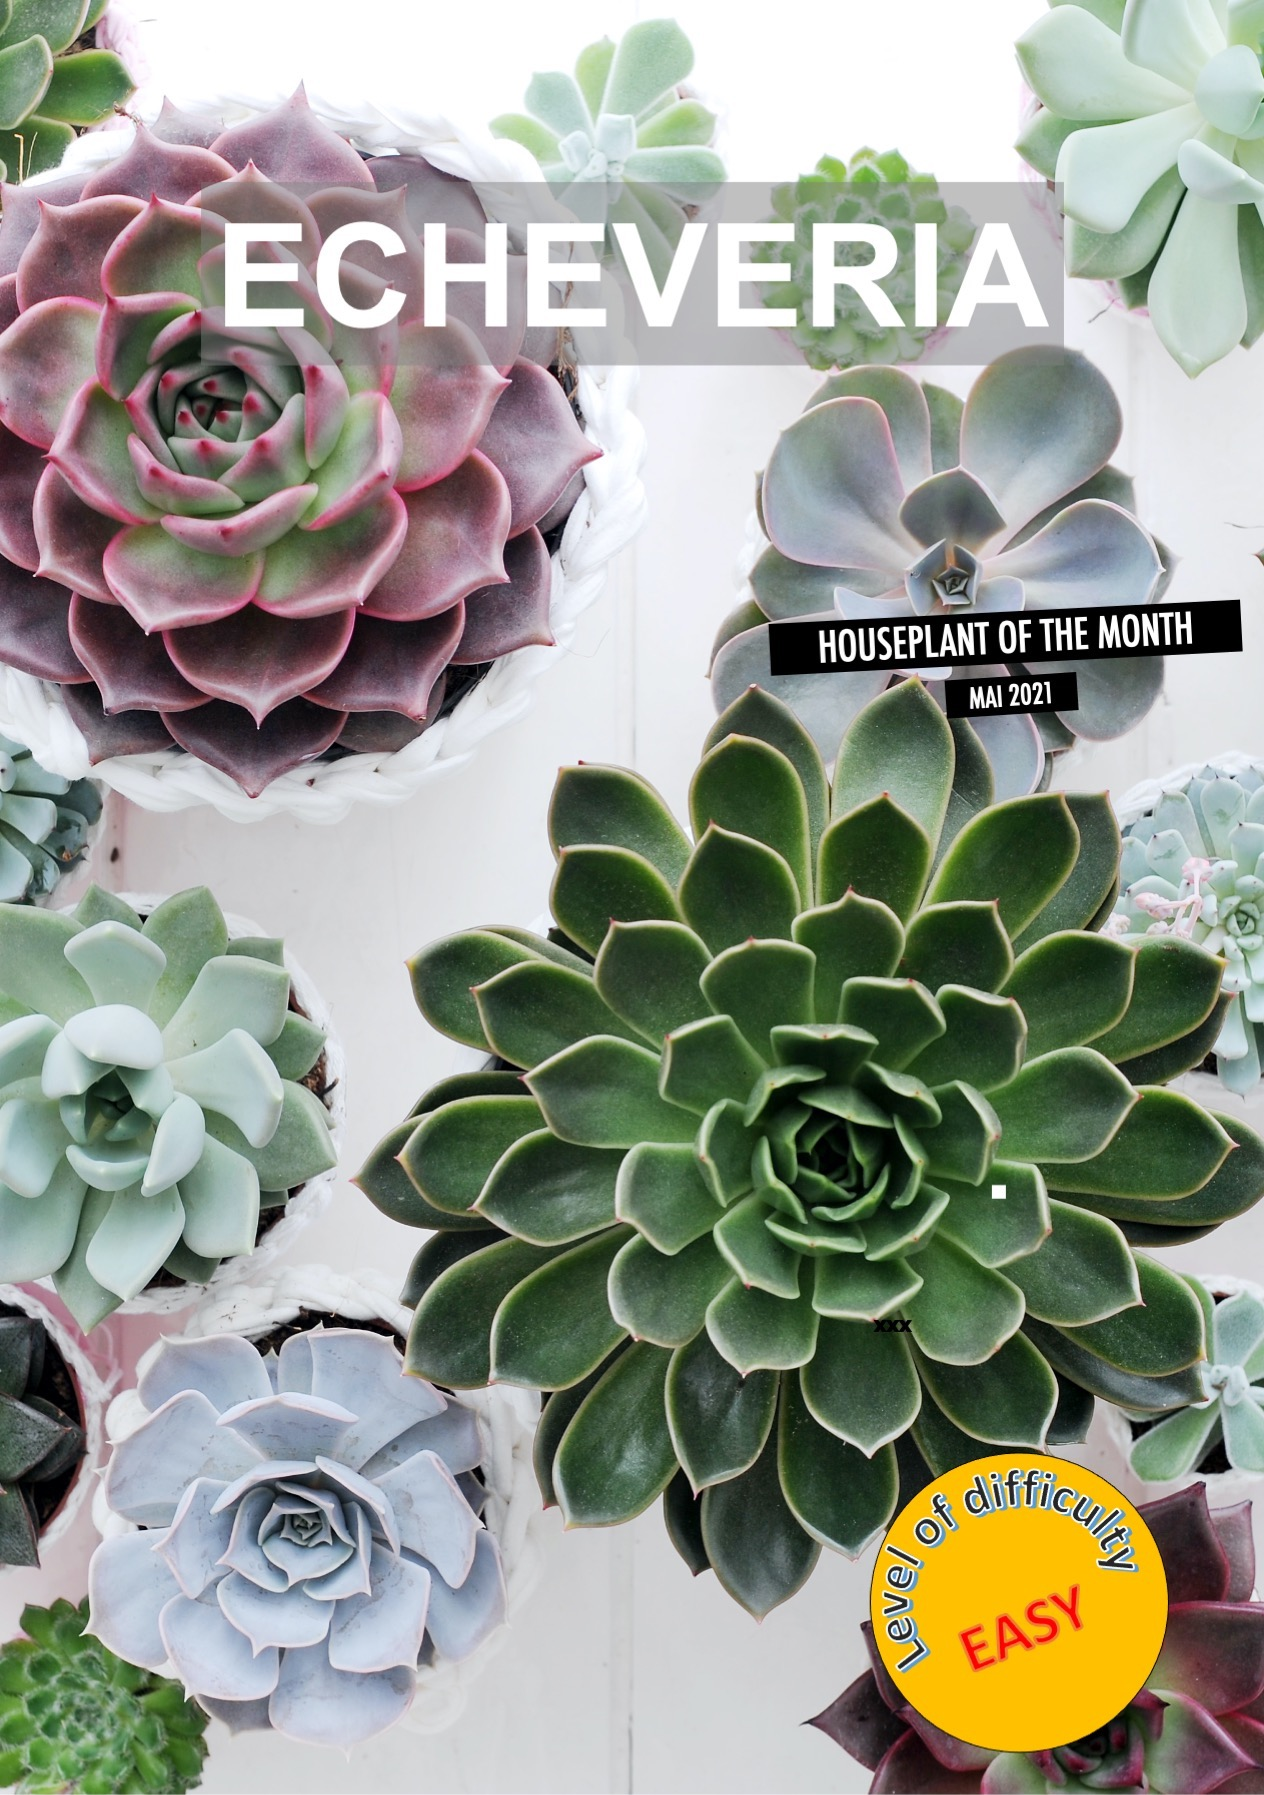 Collection of various echeverias of different sizes and colors.